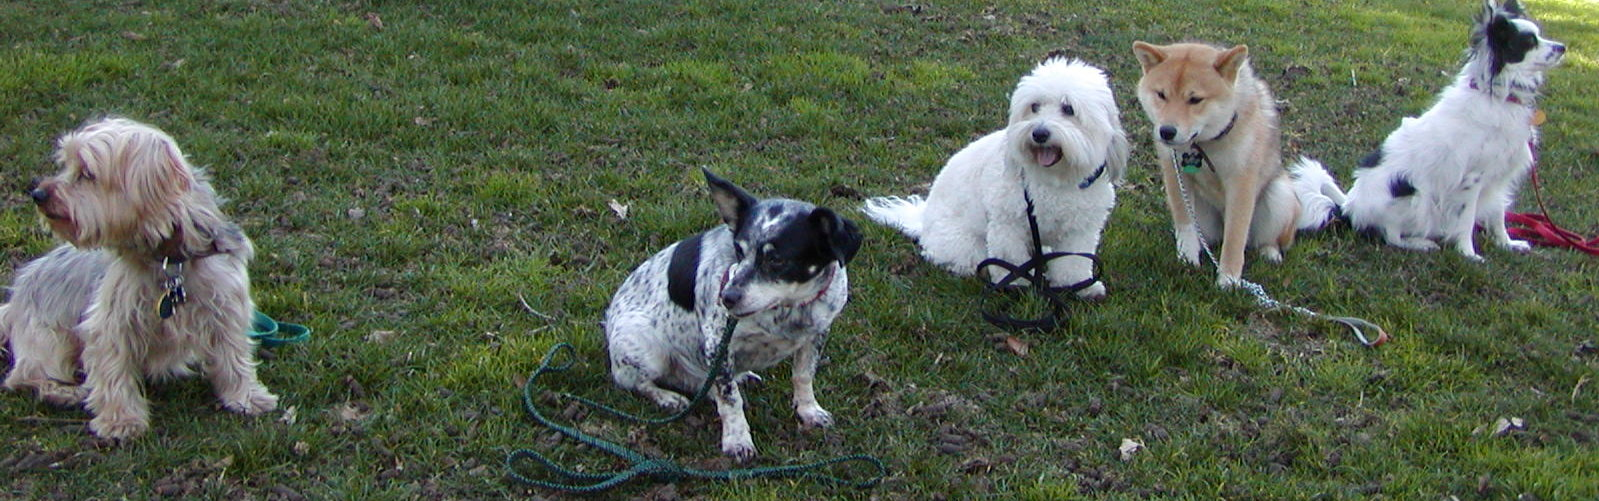 Dog Obedience - Teaching a Stay